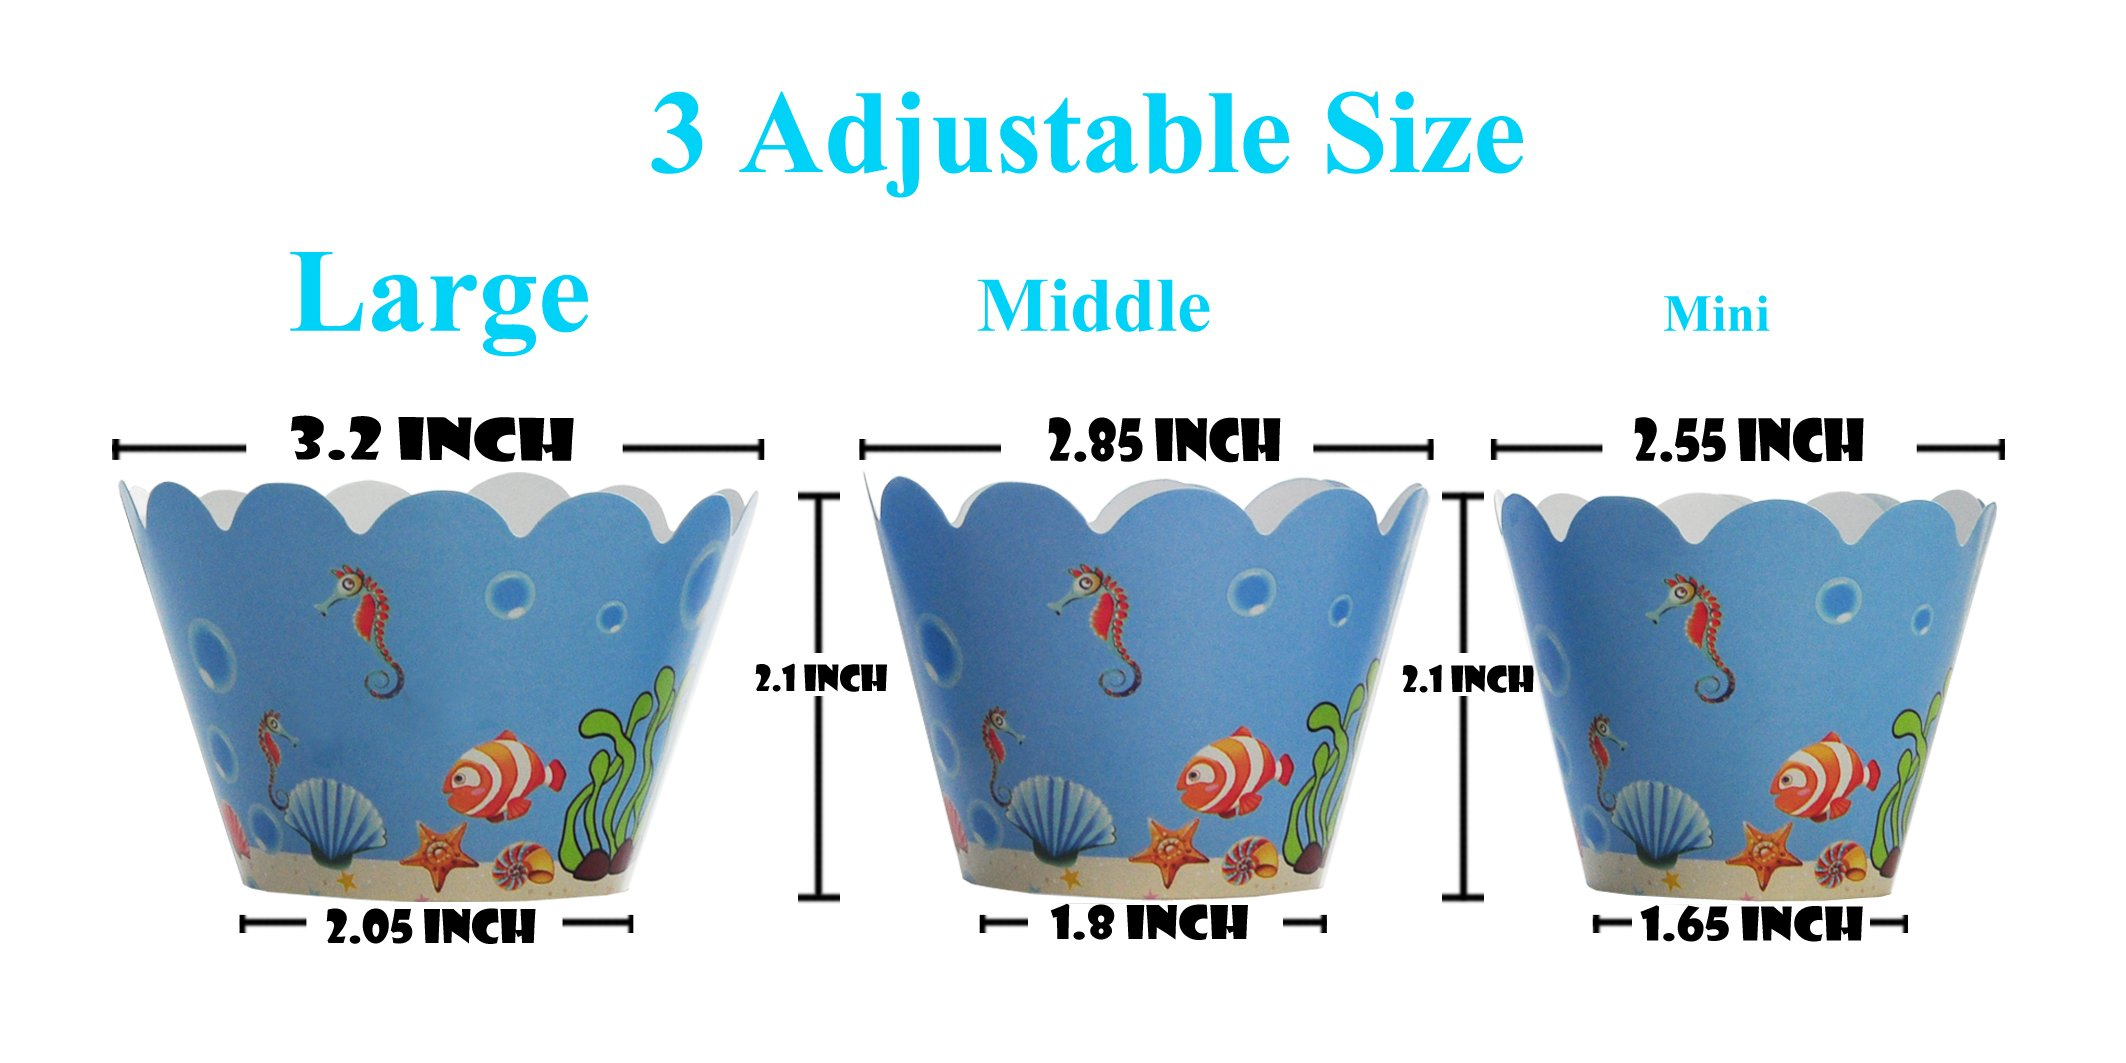 BeBeFun Adjustable Cupcake Wrappers and Toppers Under the Sea and Marin Animals Theme for Kids Birthday Party Supplies and Special Events Supplies 24pcs Wrappers and 24pcs Toppers in Pack. by BeBeFun (Image #4)